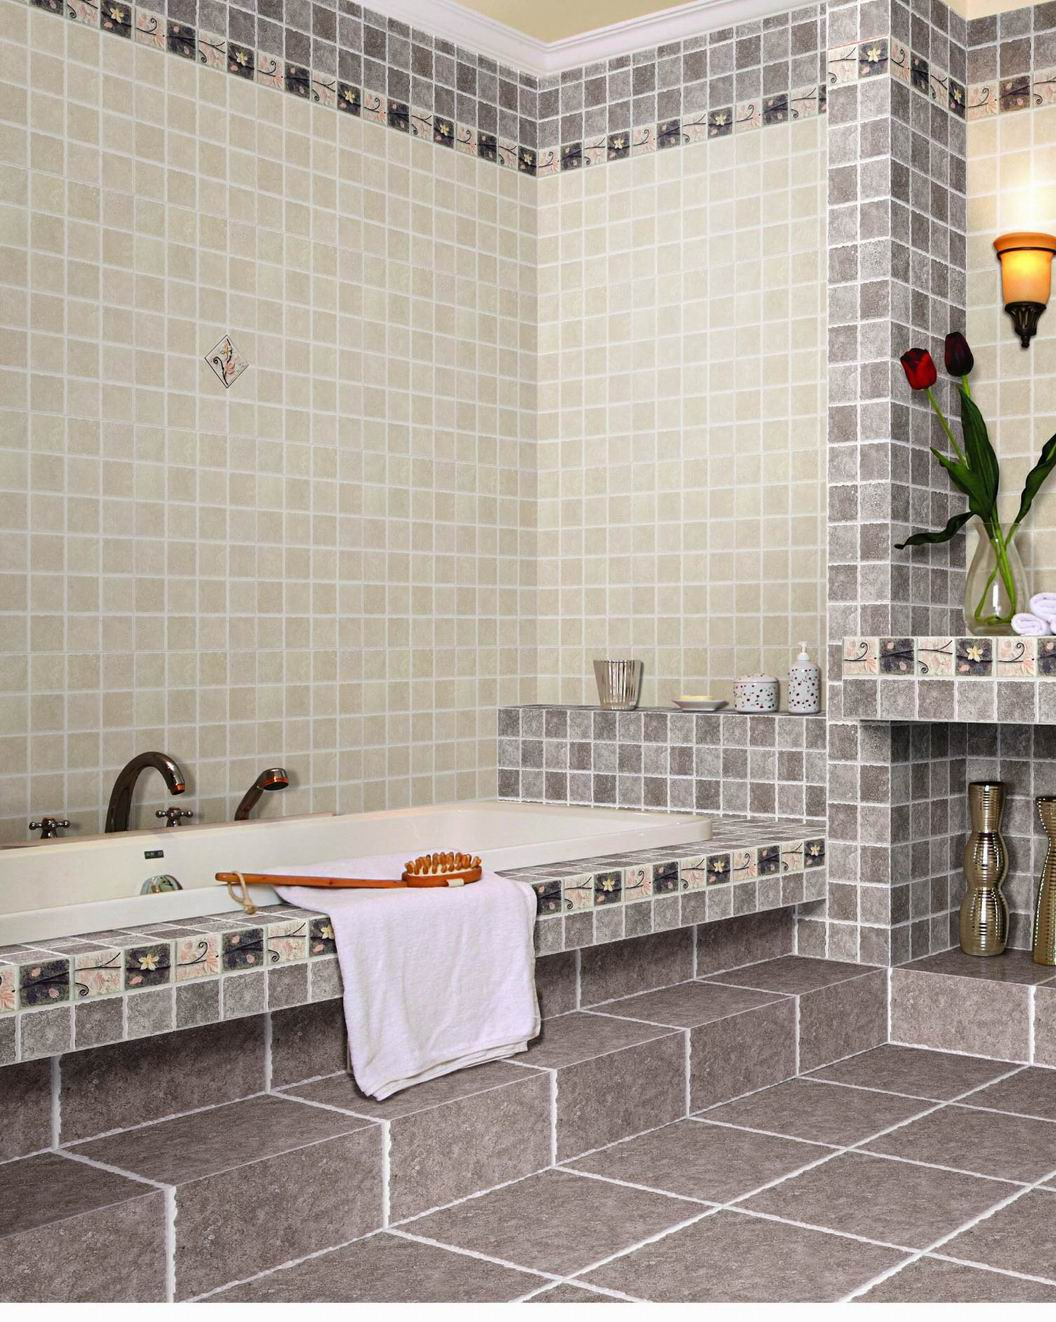 Tile designs for bathroom walls - 5 7